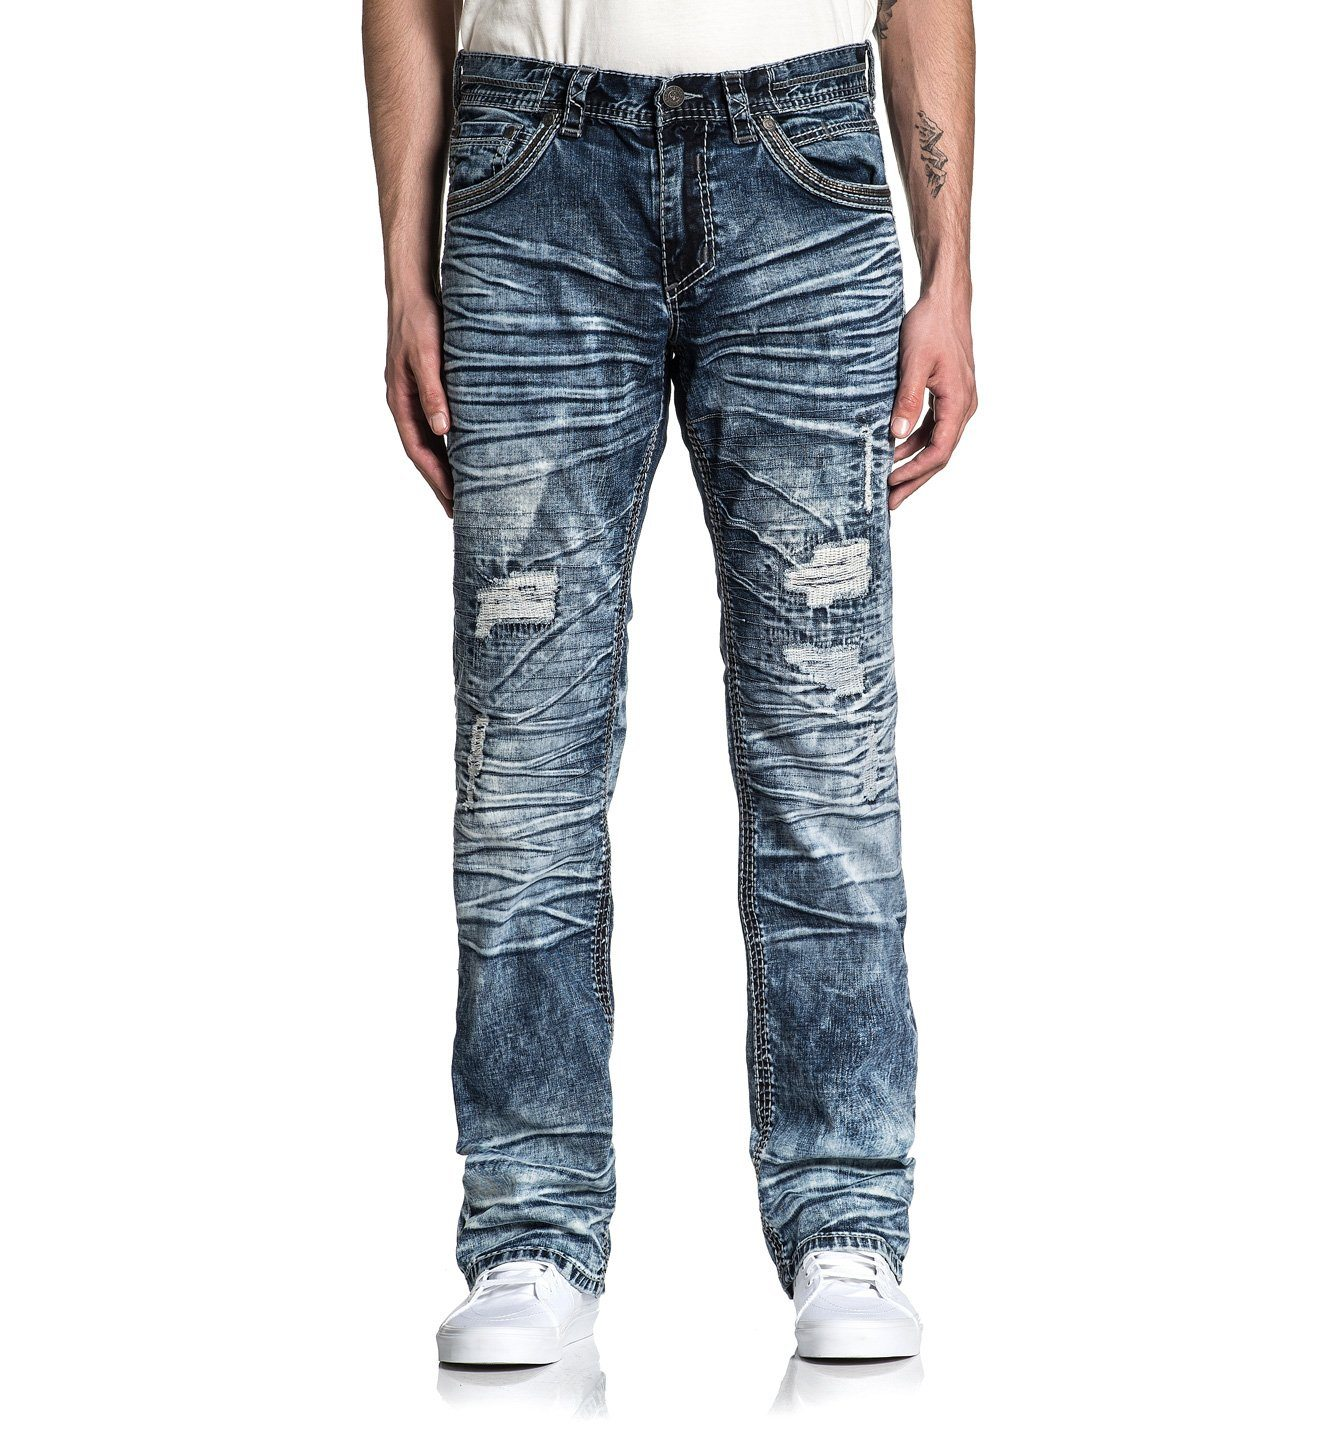 Blake Fleur Quincy - Mens Denim Bottoms - Affliction Clothing